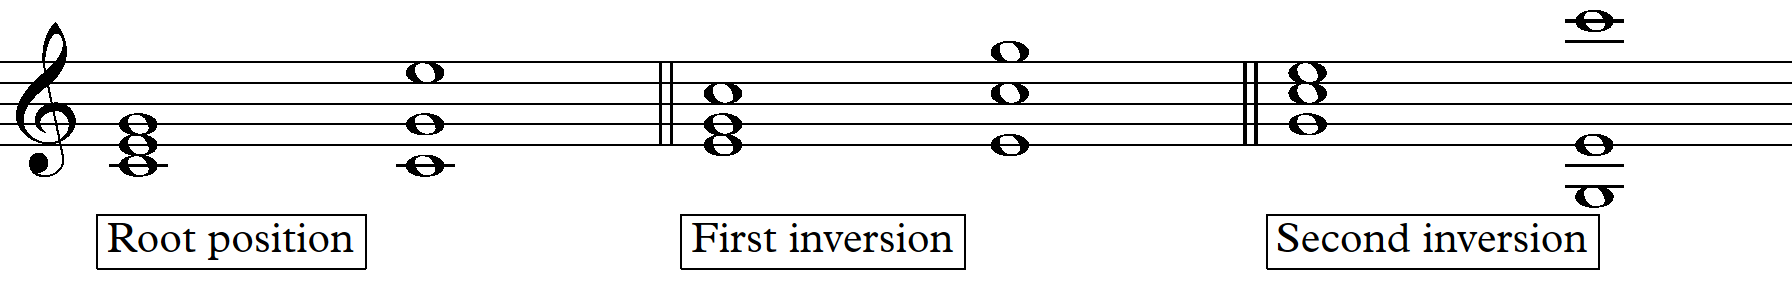 Chord inversions - Music theory for songwriting